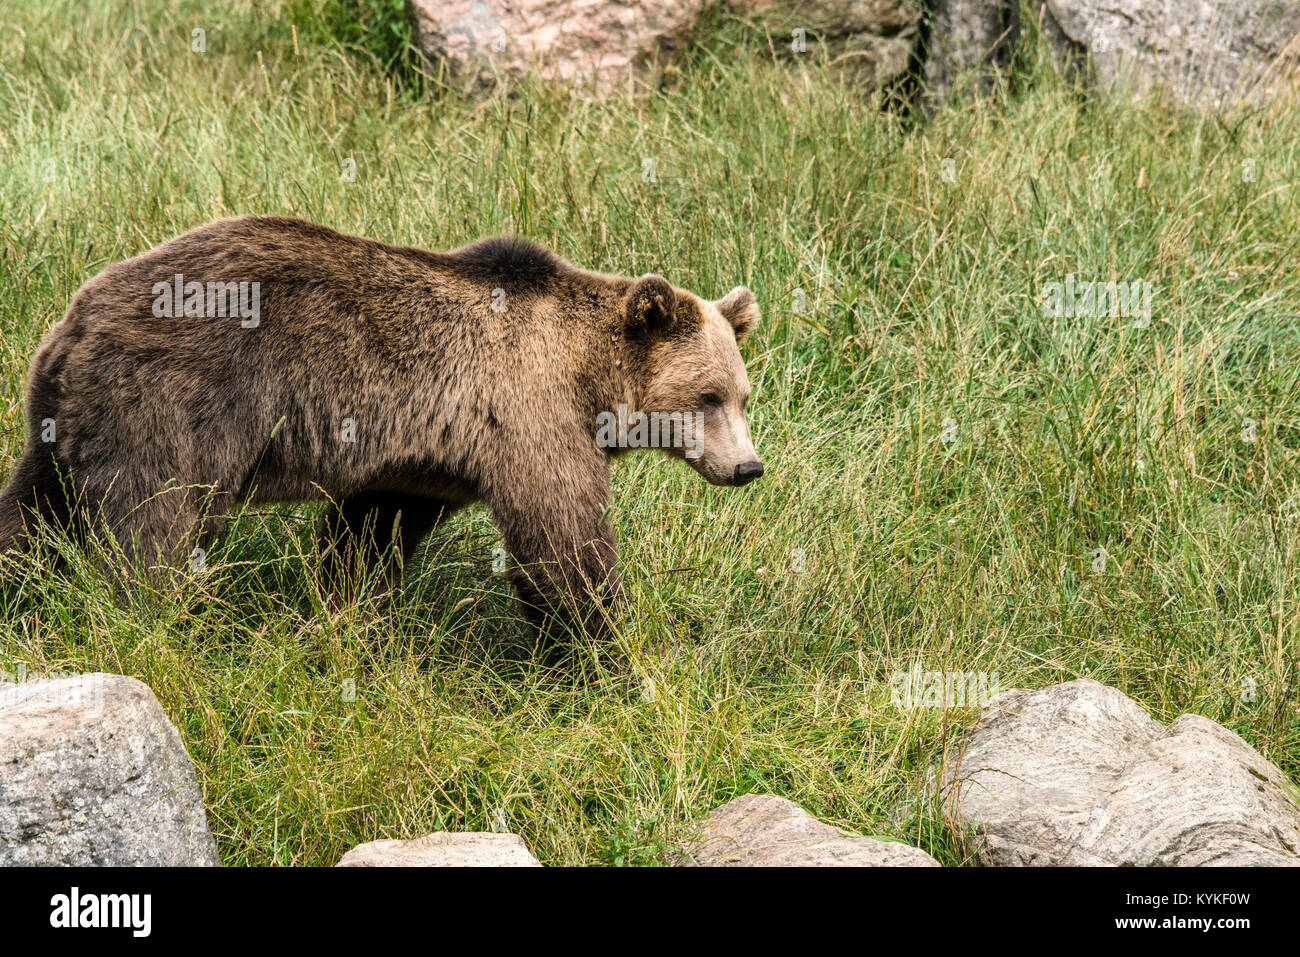 Brown bear on a green meadow in the spring with large rocks and tall grass - Stock Image